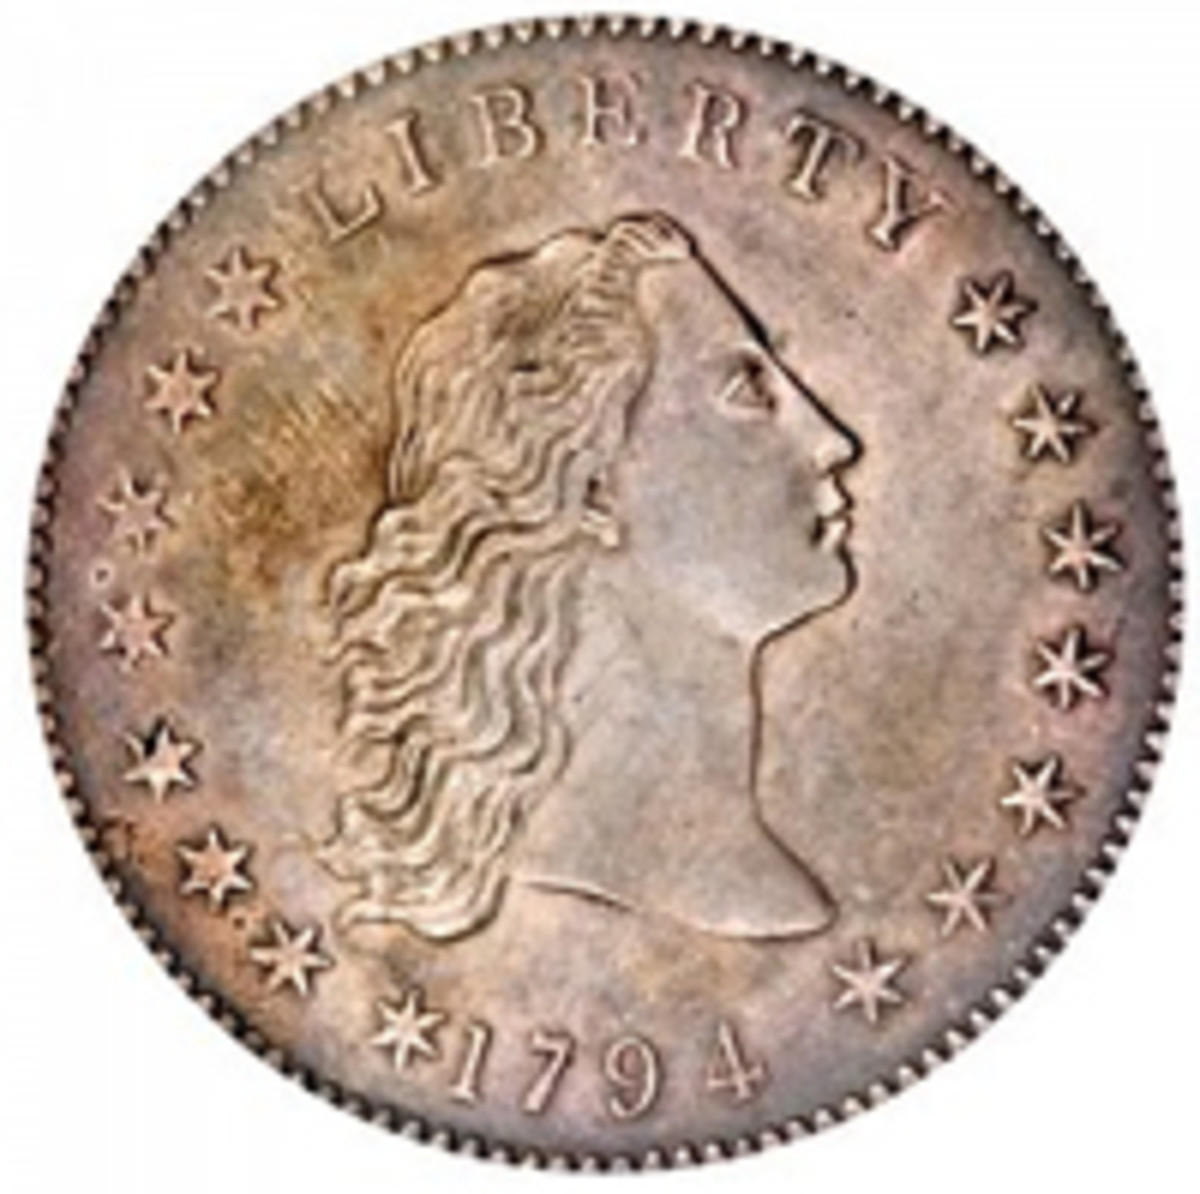 1794 dollar obverse (Image courtesy www.usacoinbook.com)